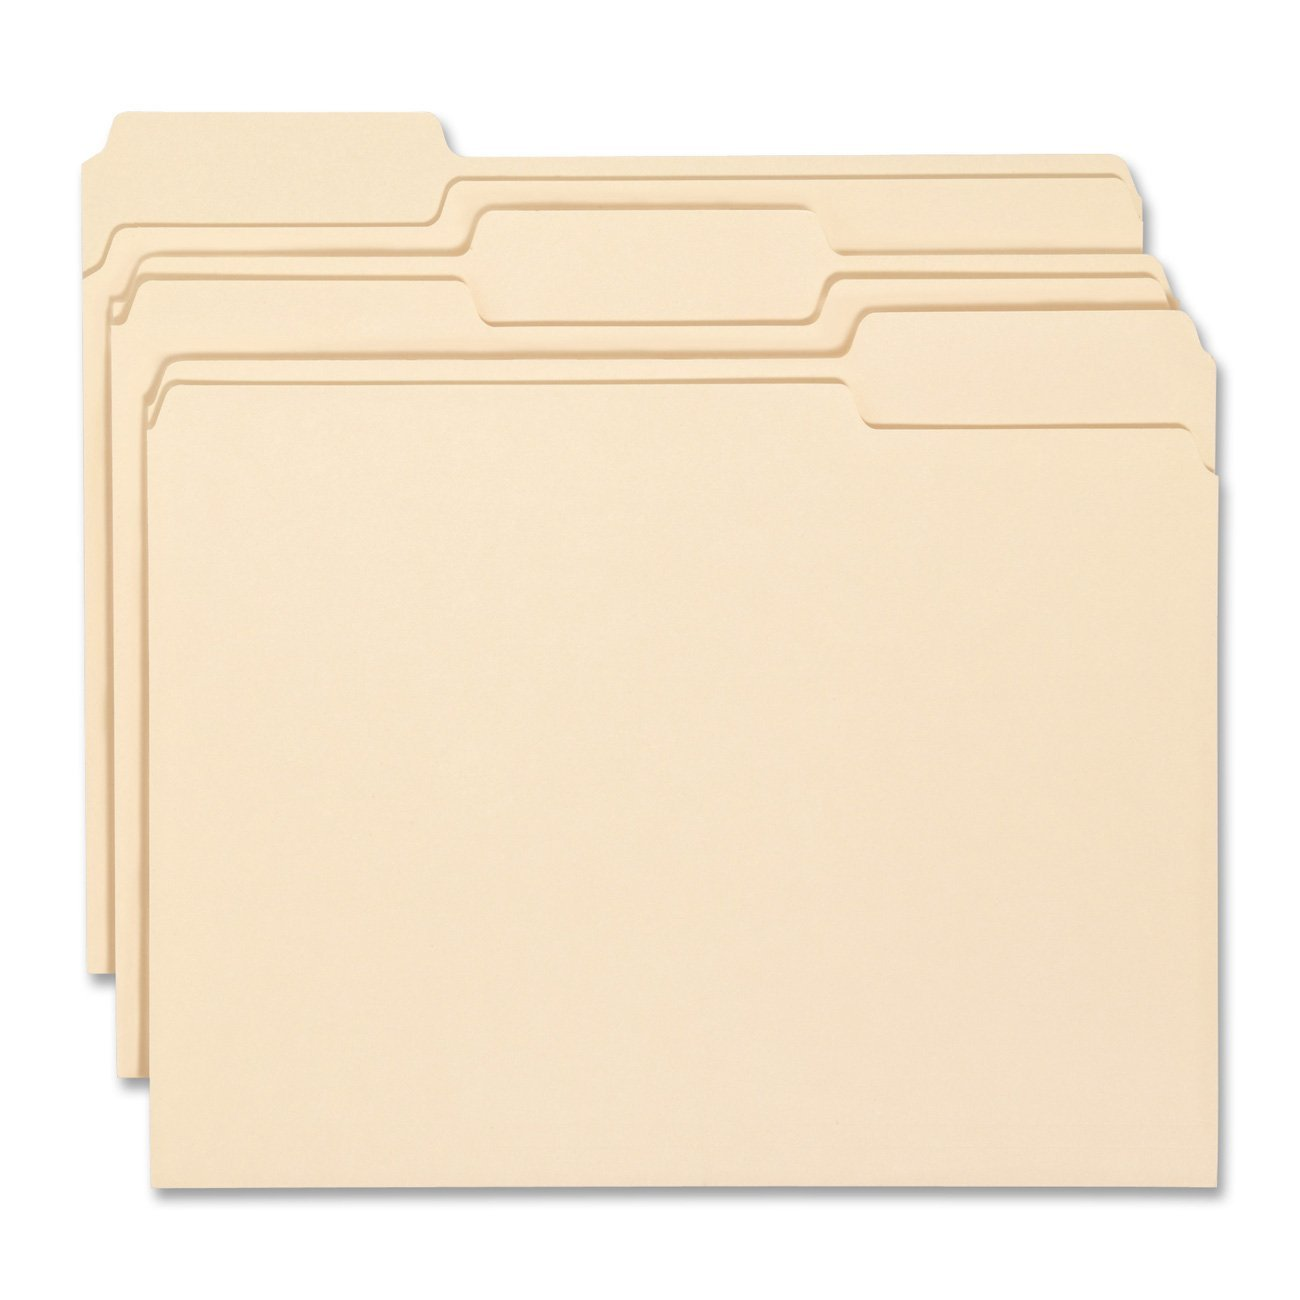 WB Mason 100 Manilla File folders 1/3 Cut 11pt